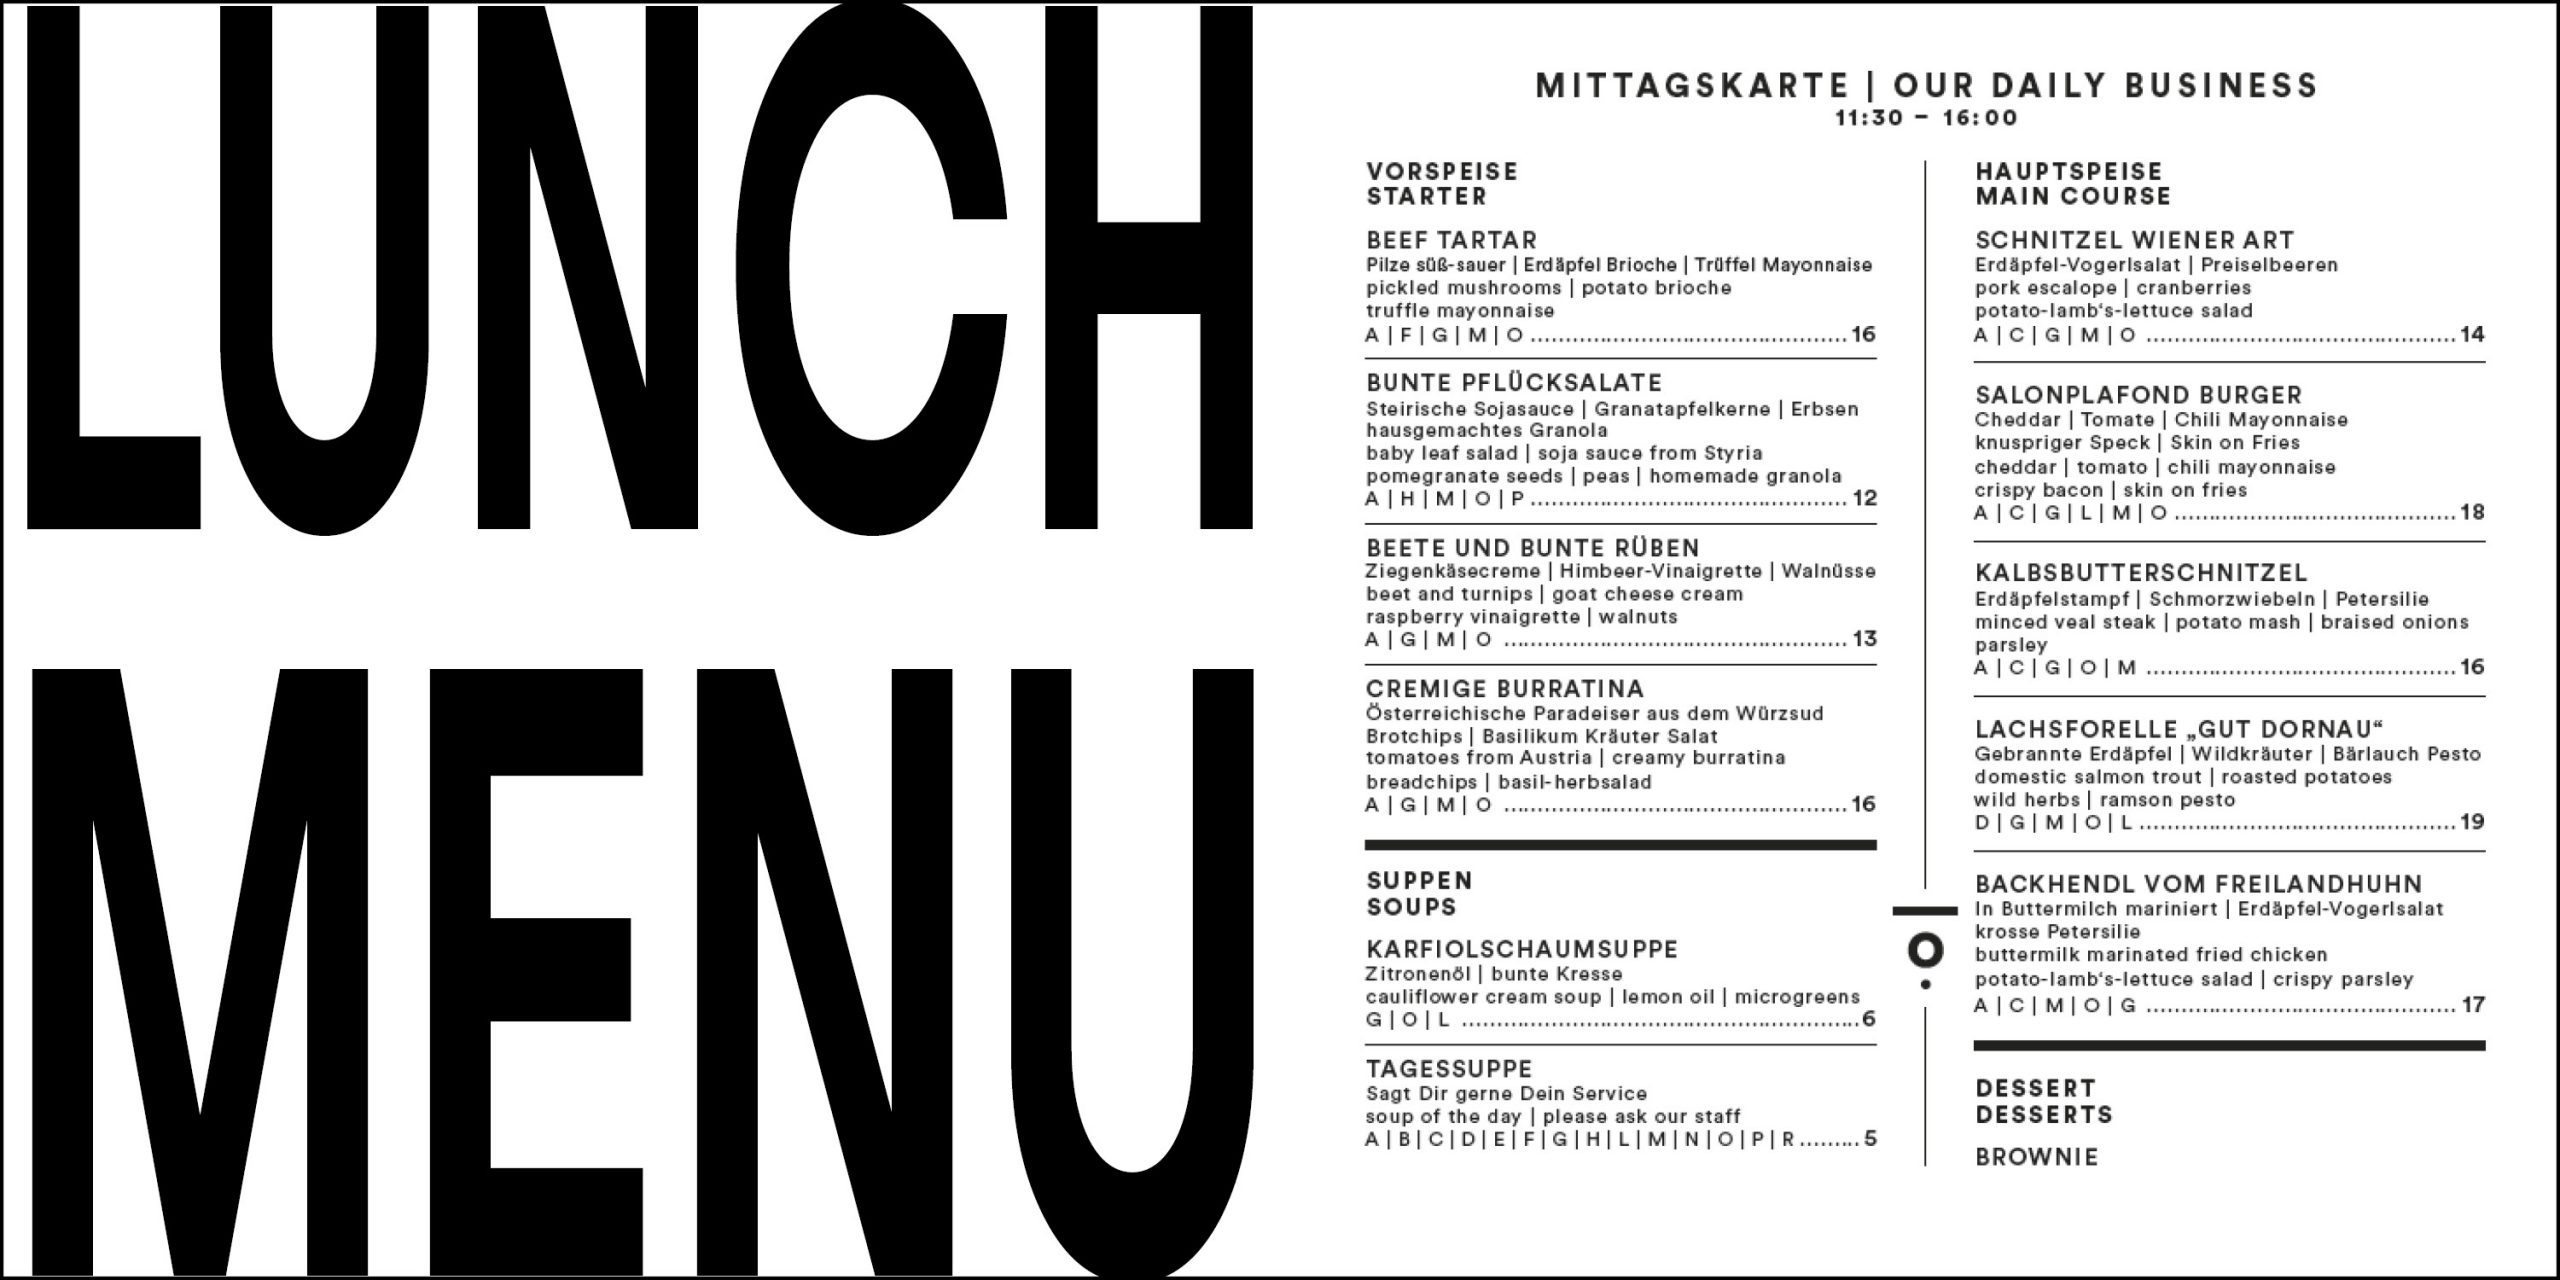 Lunch Menu from Salonplafond